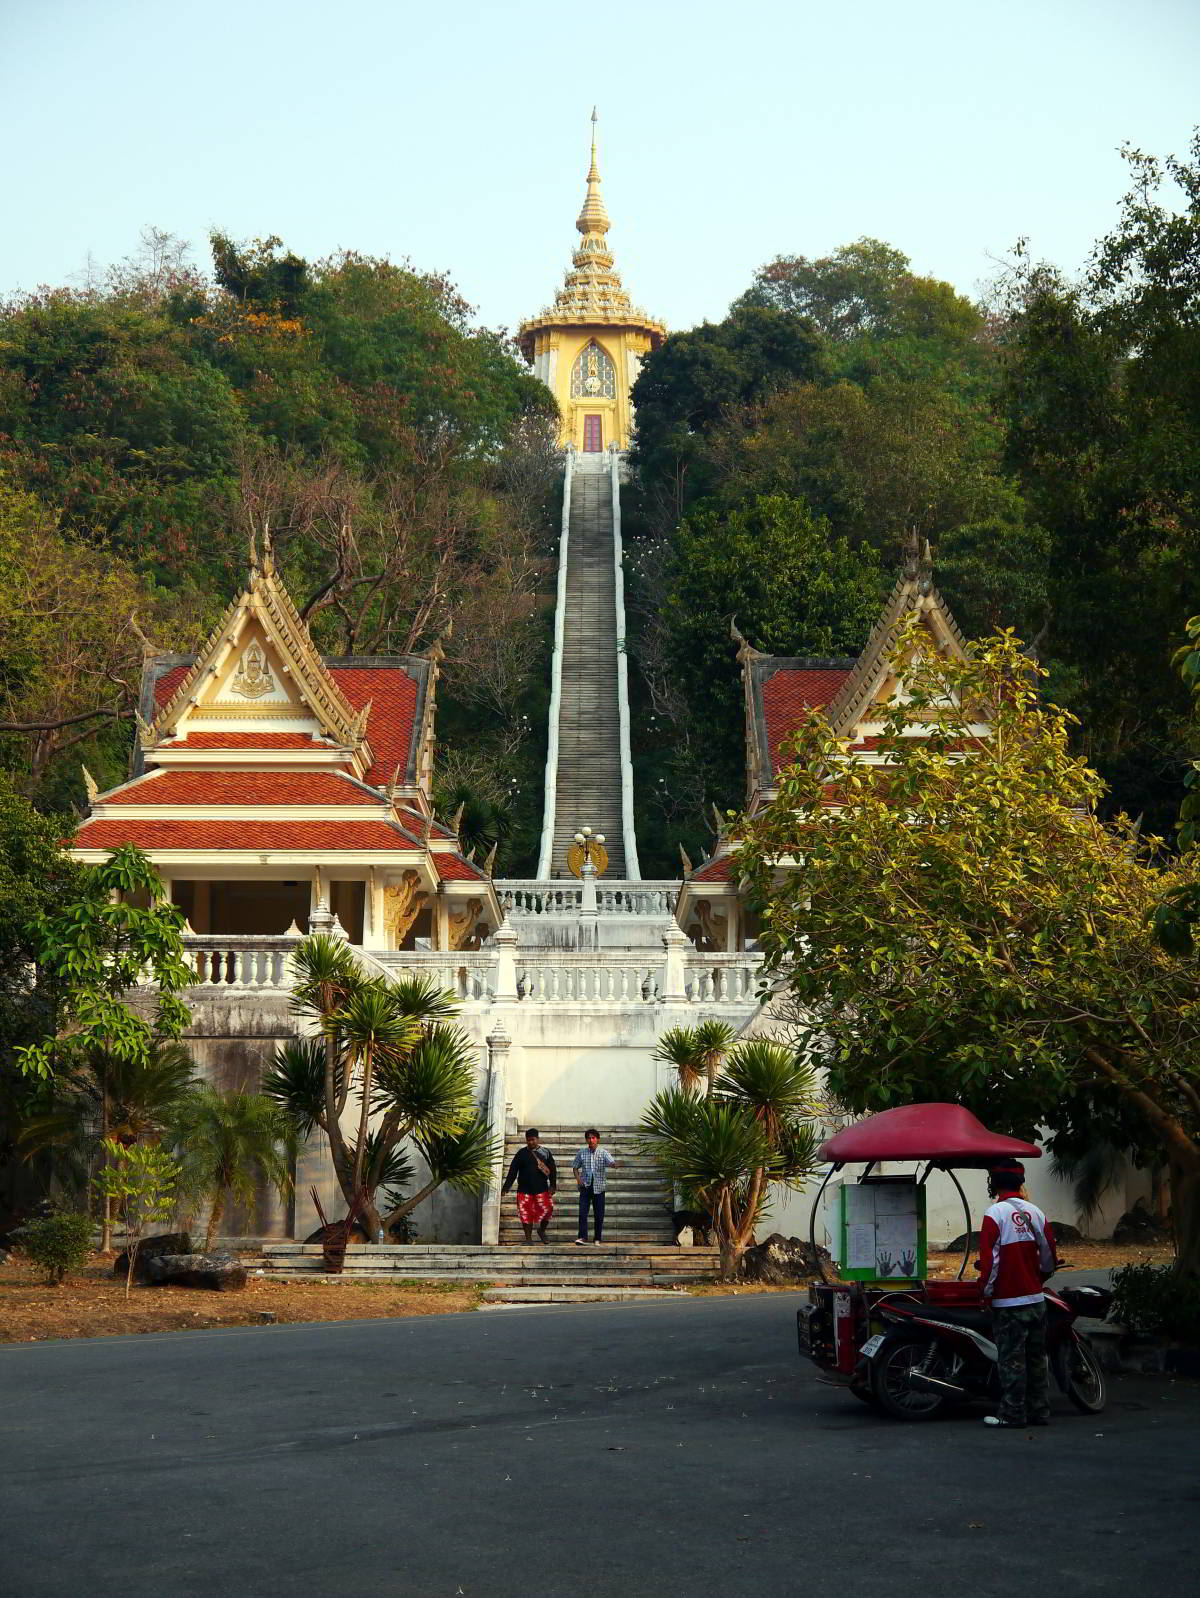 Hilltop temple in Thailand